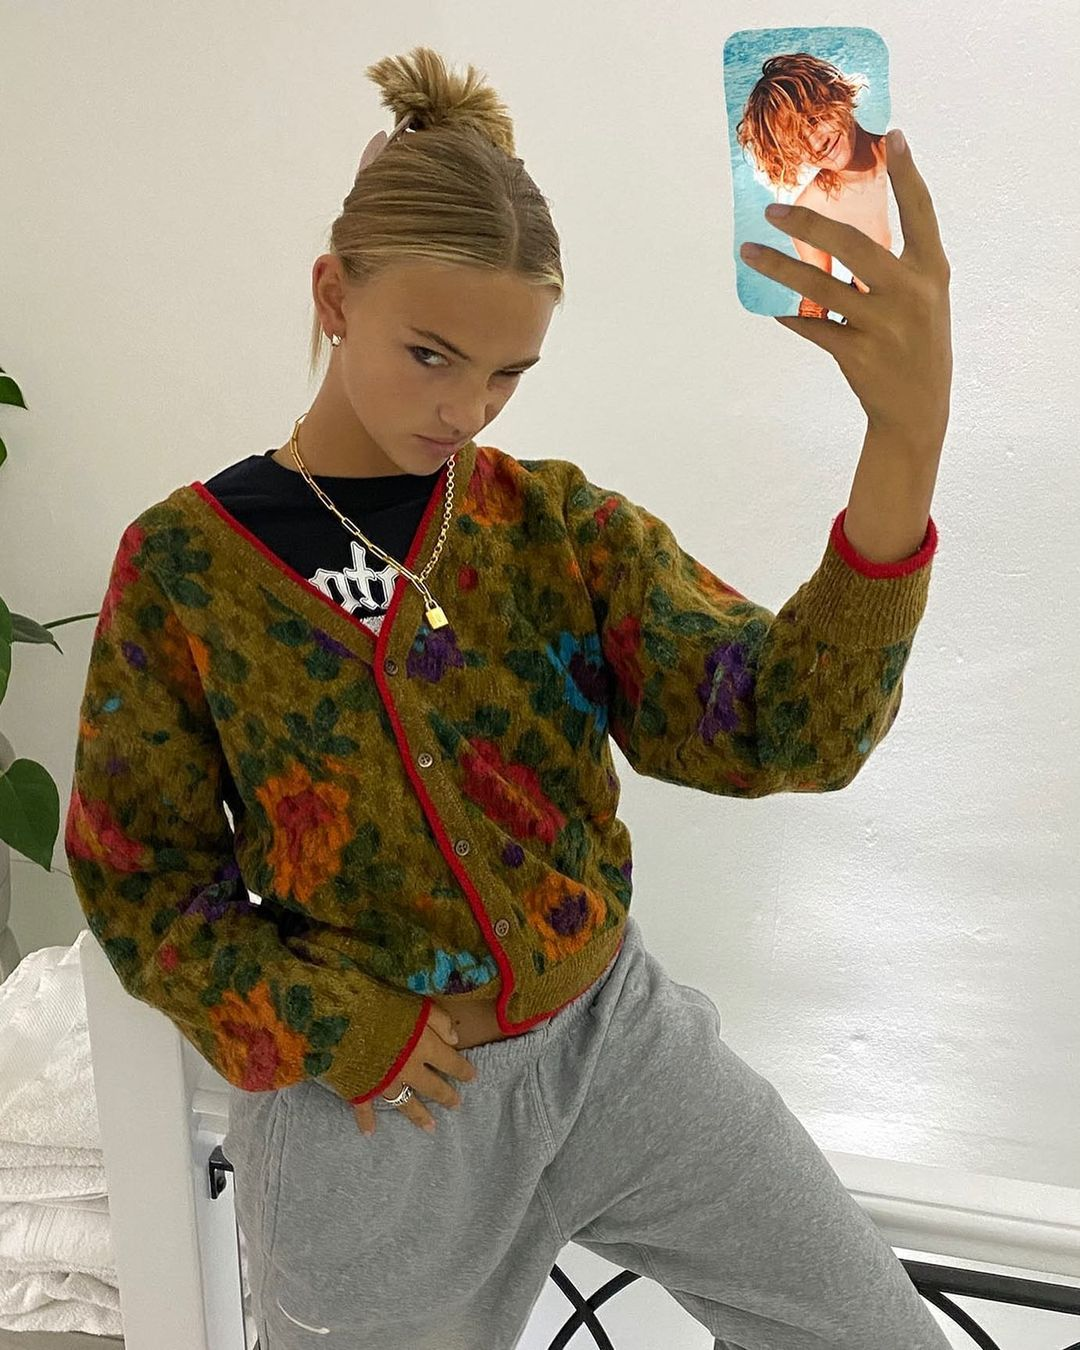 Mia Regan On Instagram Like My New Phone Case In 2021 Fashion Inspo Outfits Style Fashion